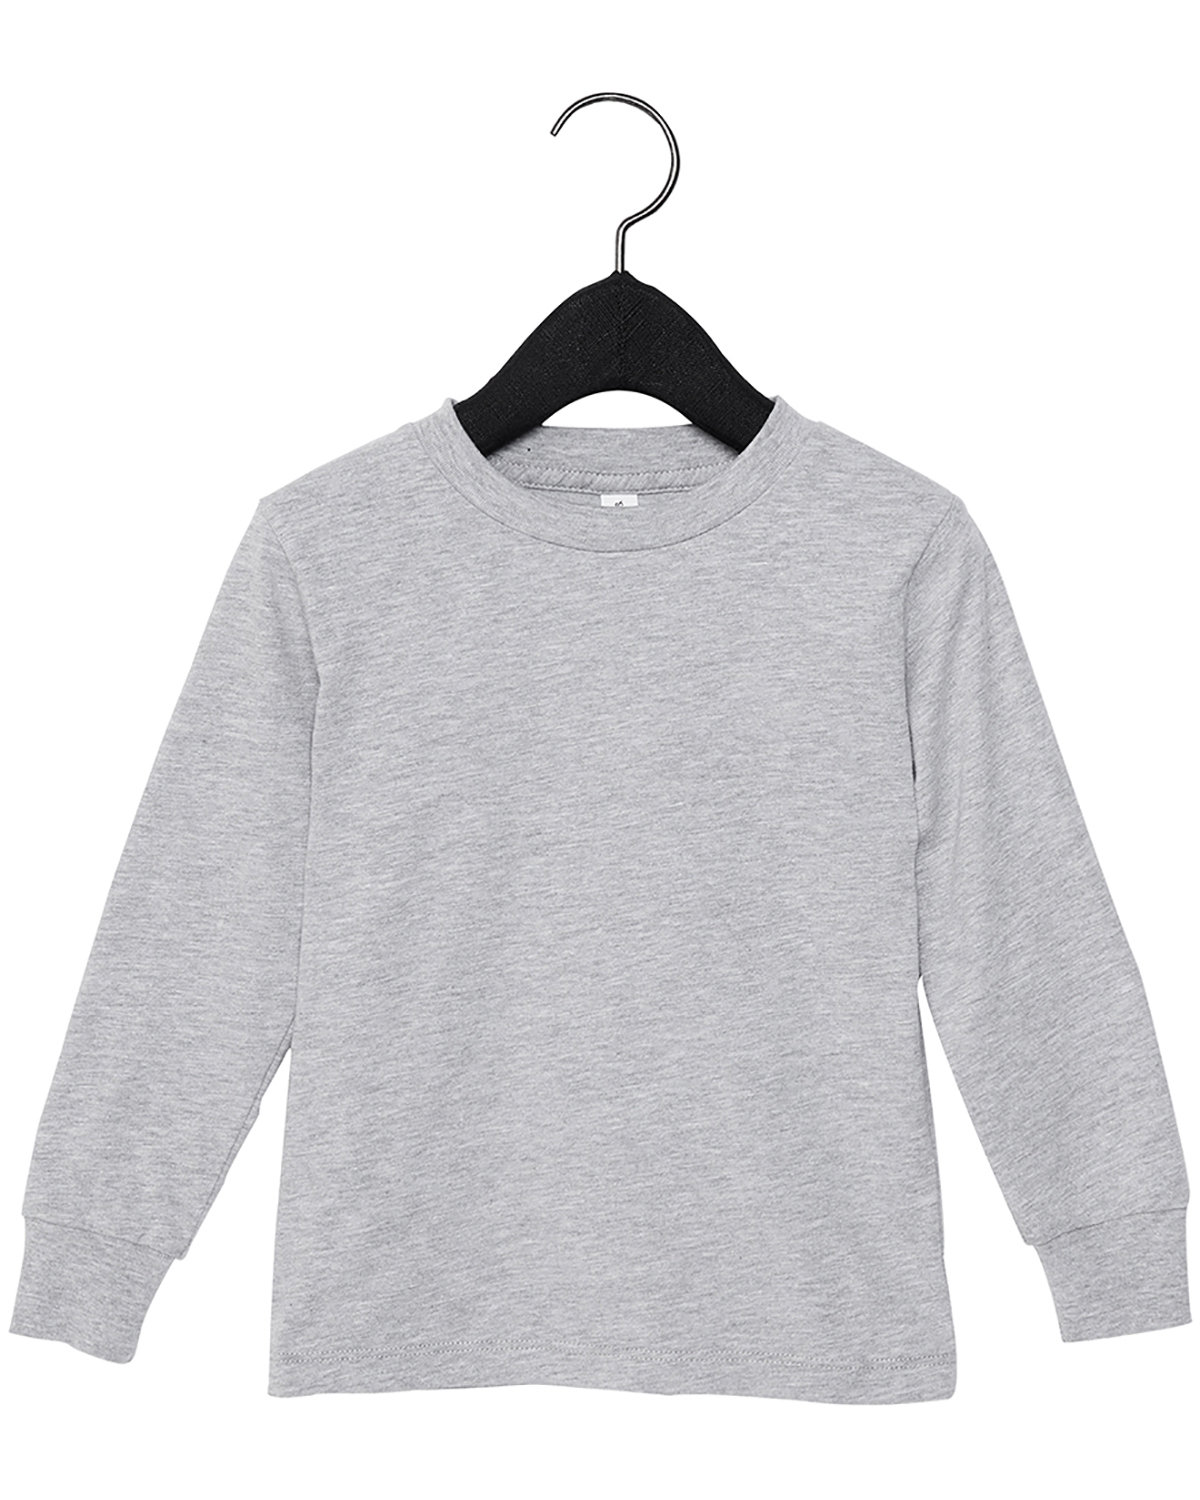 Bella + Canvas Youth Toddler Jersey Long Sleeve T-Shirt ATHLETIC HEATHER